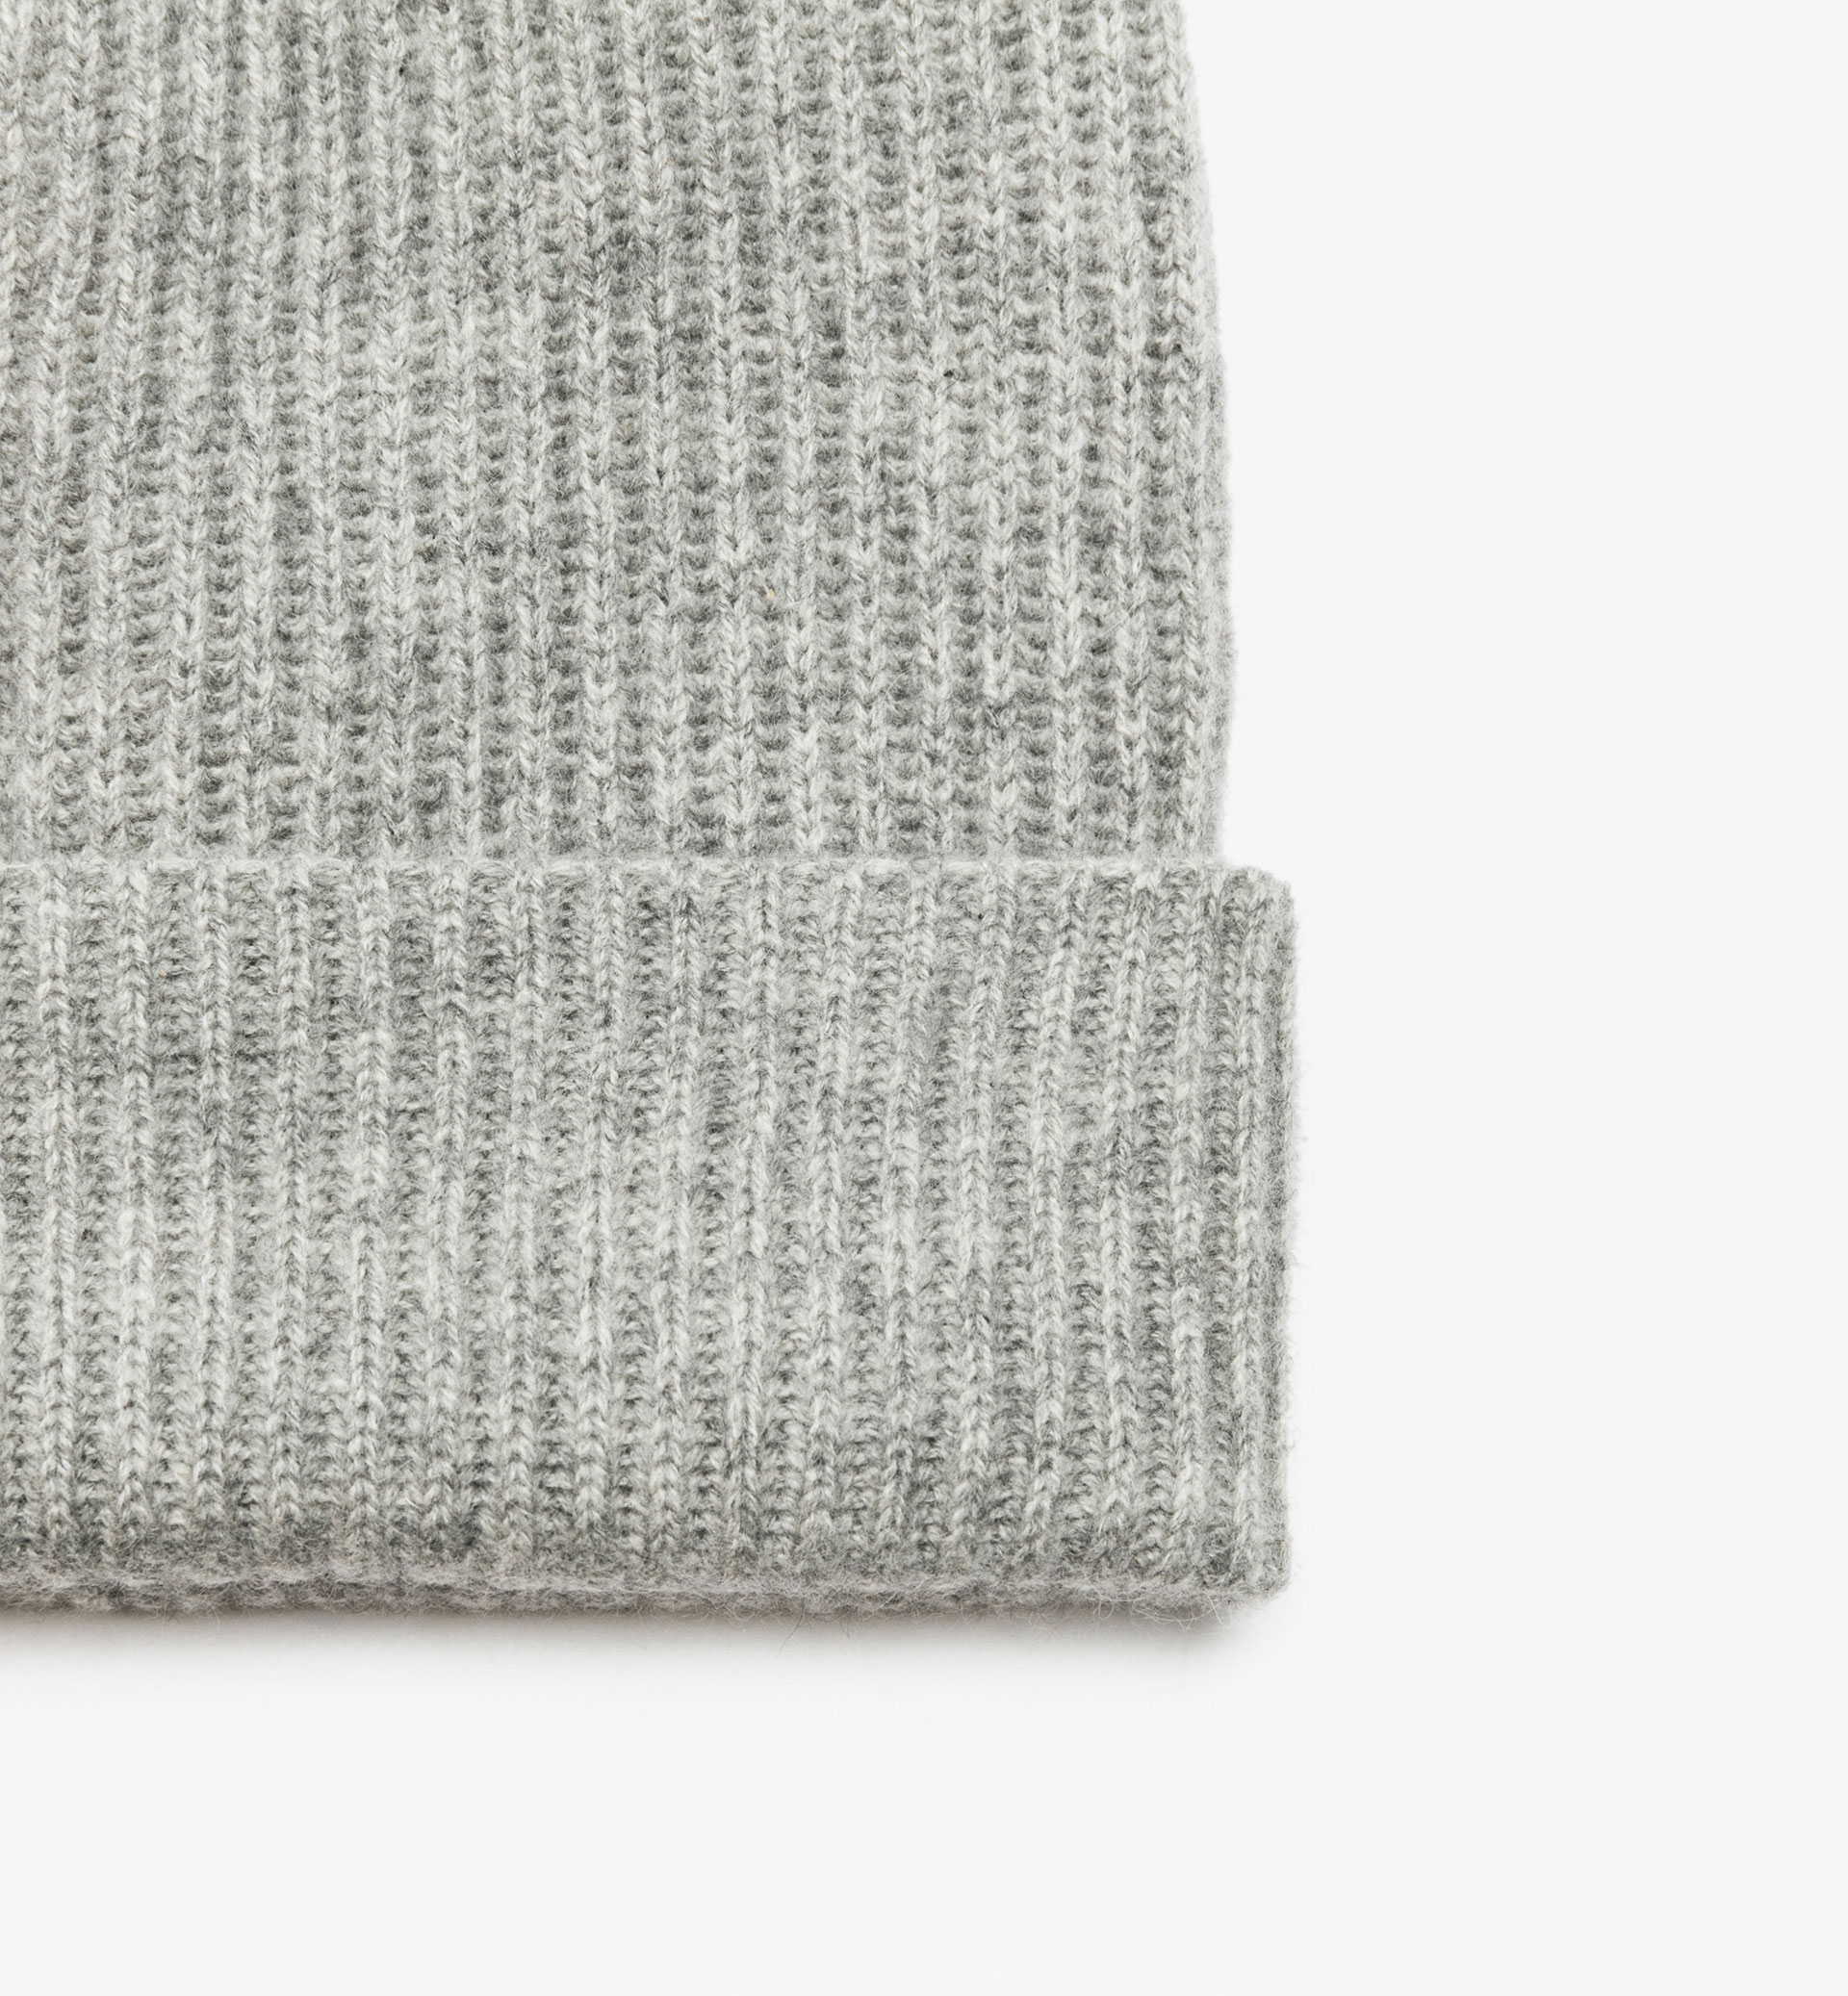 LIMITED GREY 100% CASHMERE HAT